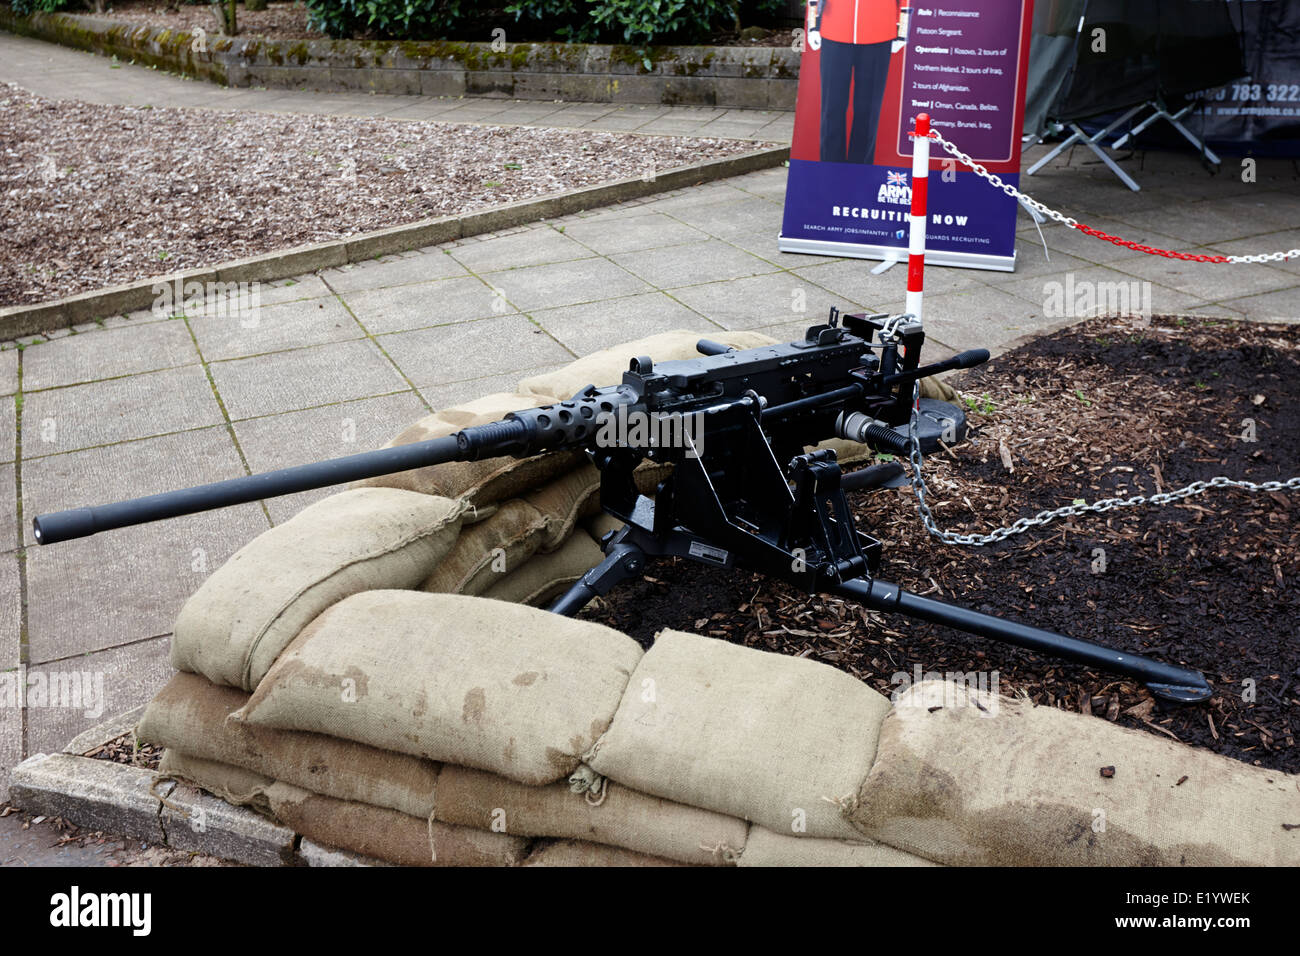 Machine Gun Stock Photos & Machine Gun Stock Images - Alamy